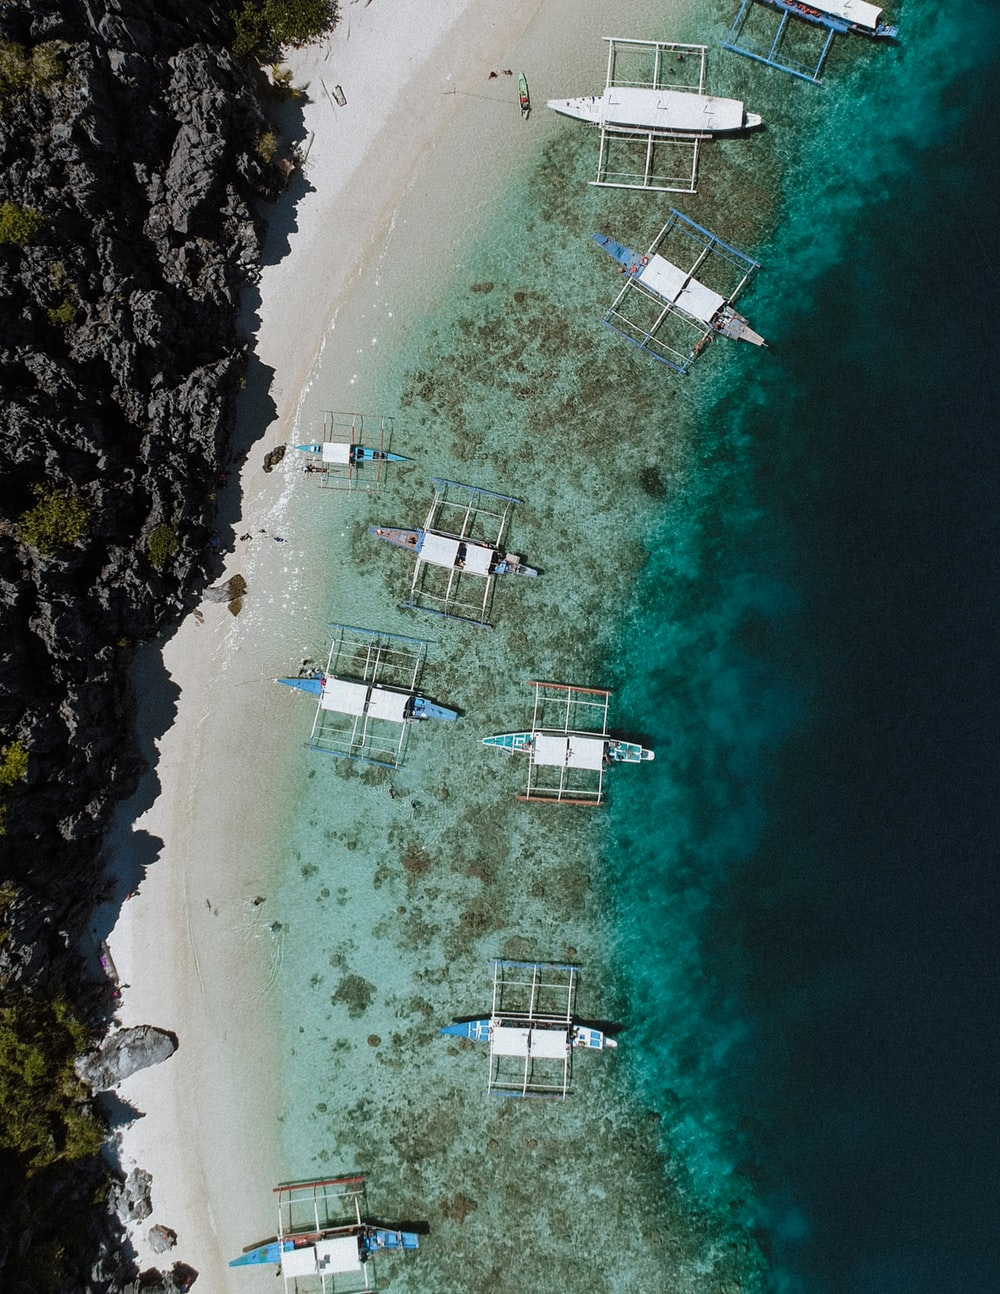 aerial photo of boats docked beside islet